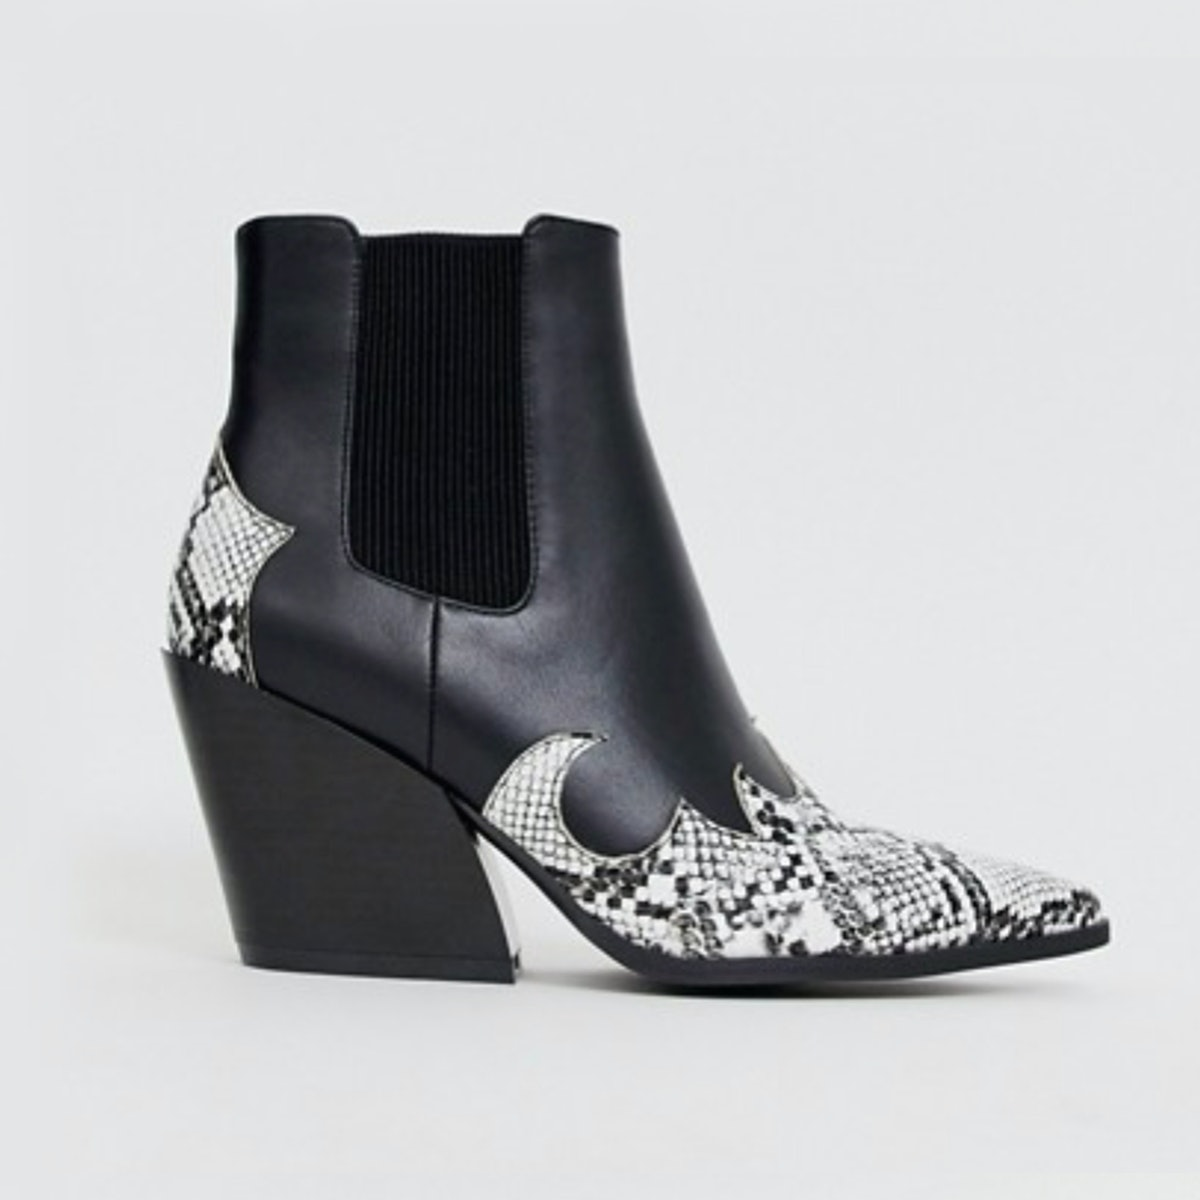 RAID Roohi Black and Snake Mix Western Boots